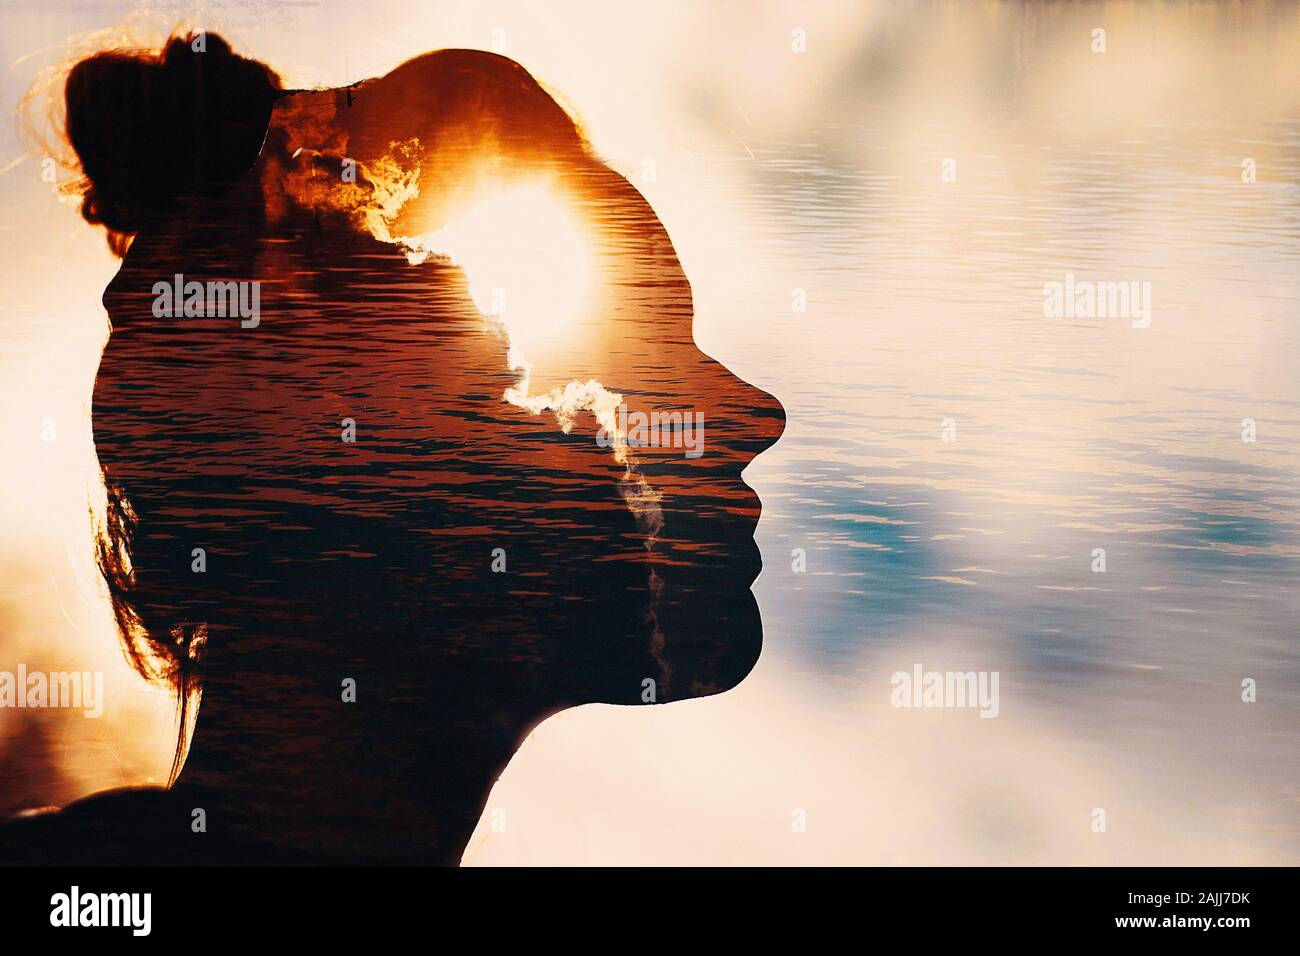 Sun peeks out from behind the clouds in woman's head. Stock Photo